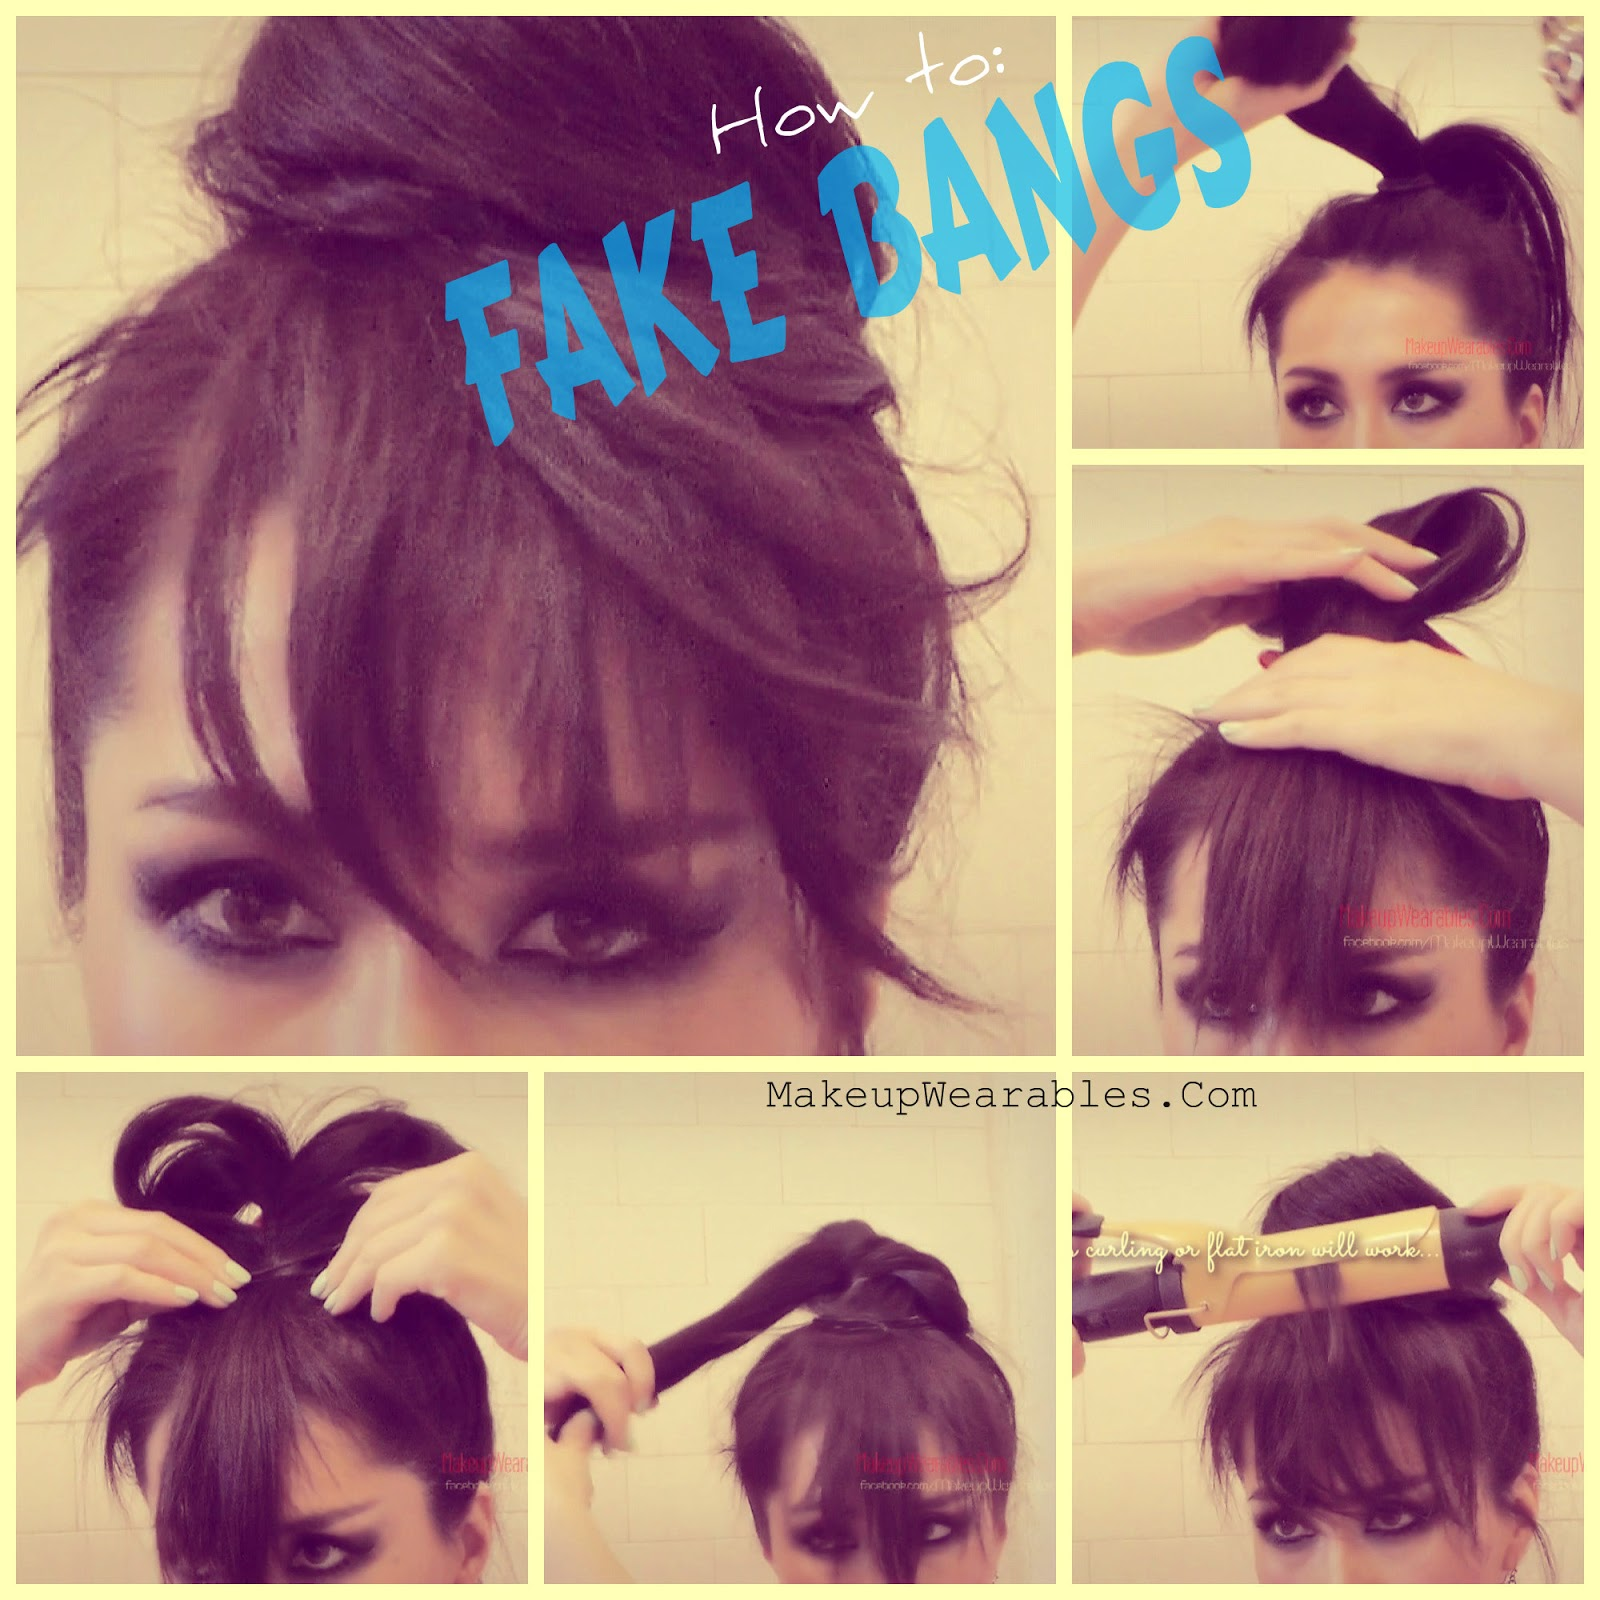 Fabulous How To Fake Bangs Cute Easy Bun Hairstyles Hair Tutorial Video Hairstyle Inspiration Daily Dogsangcom